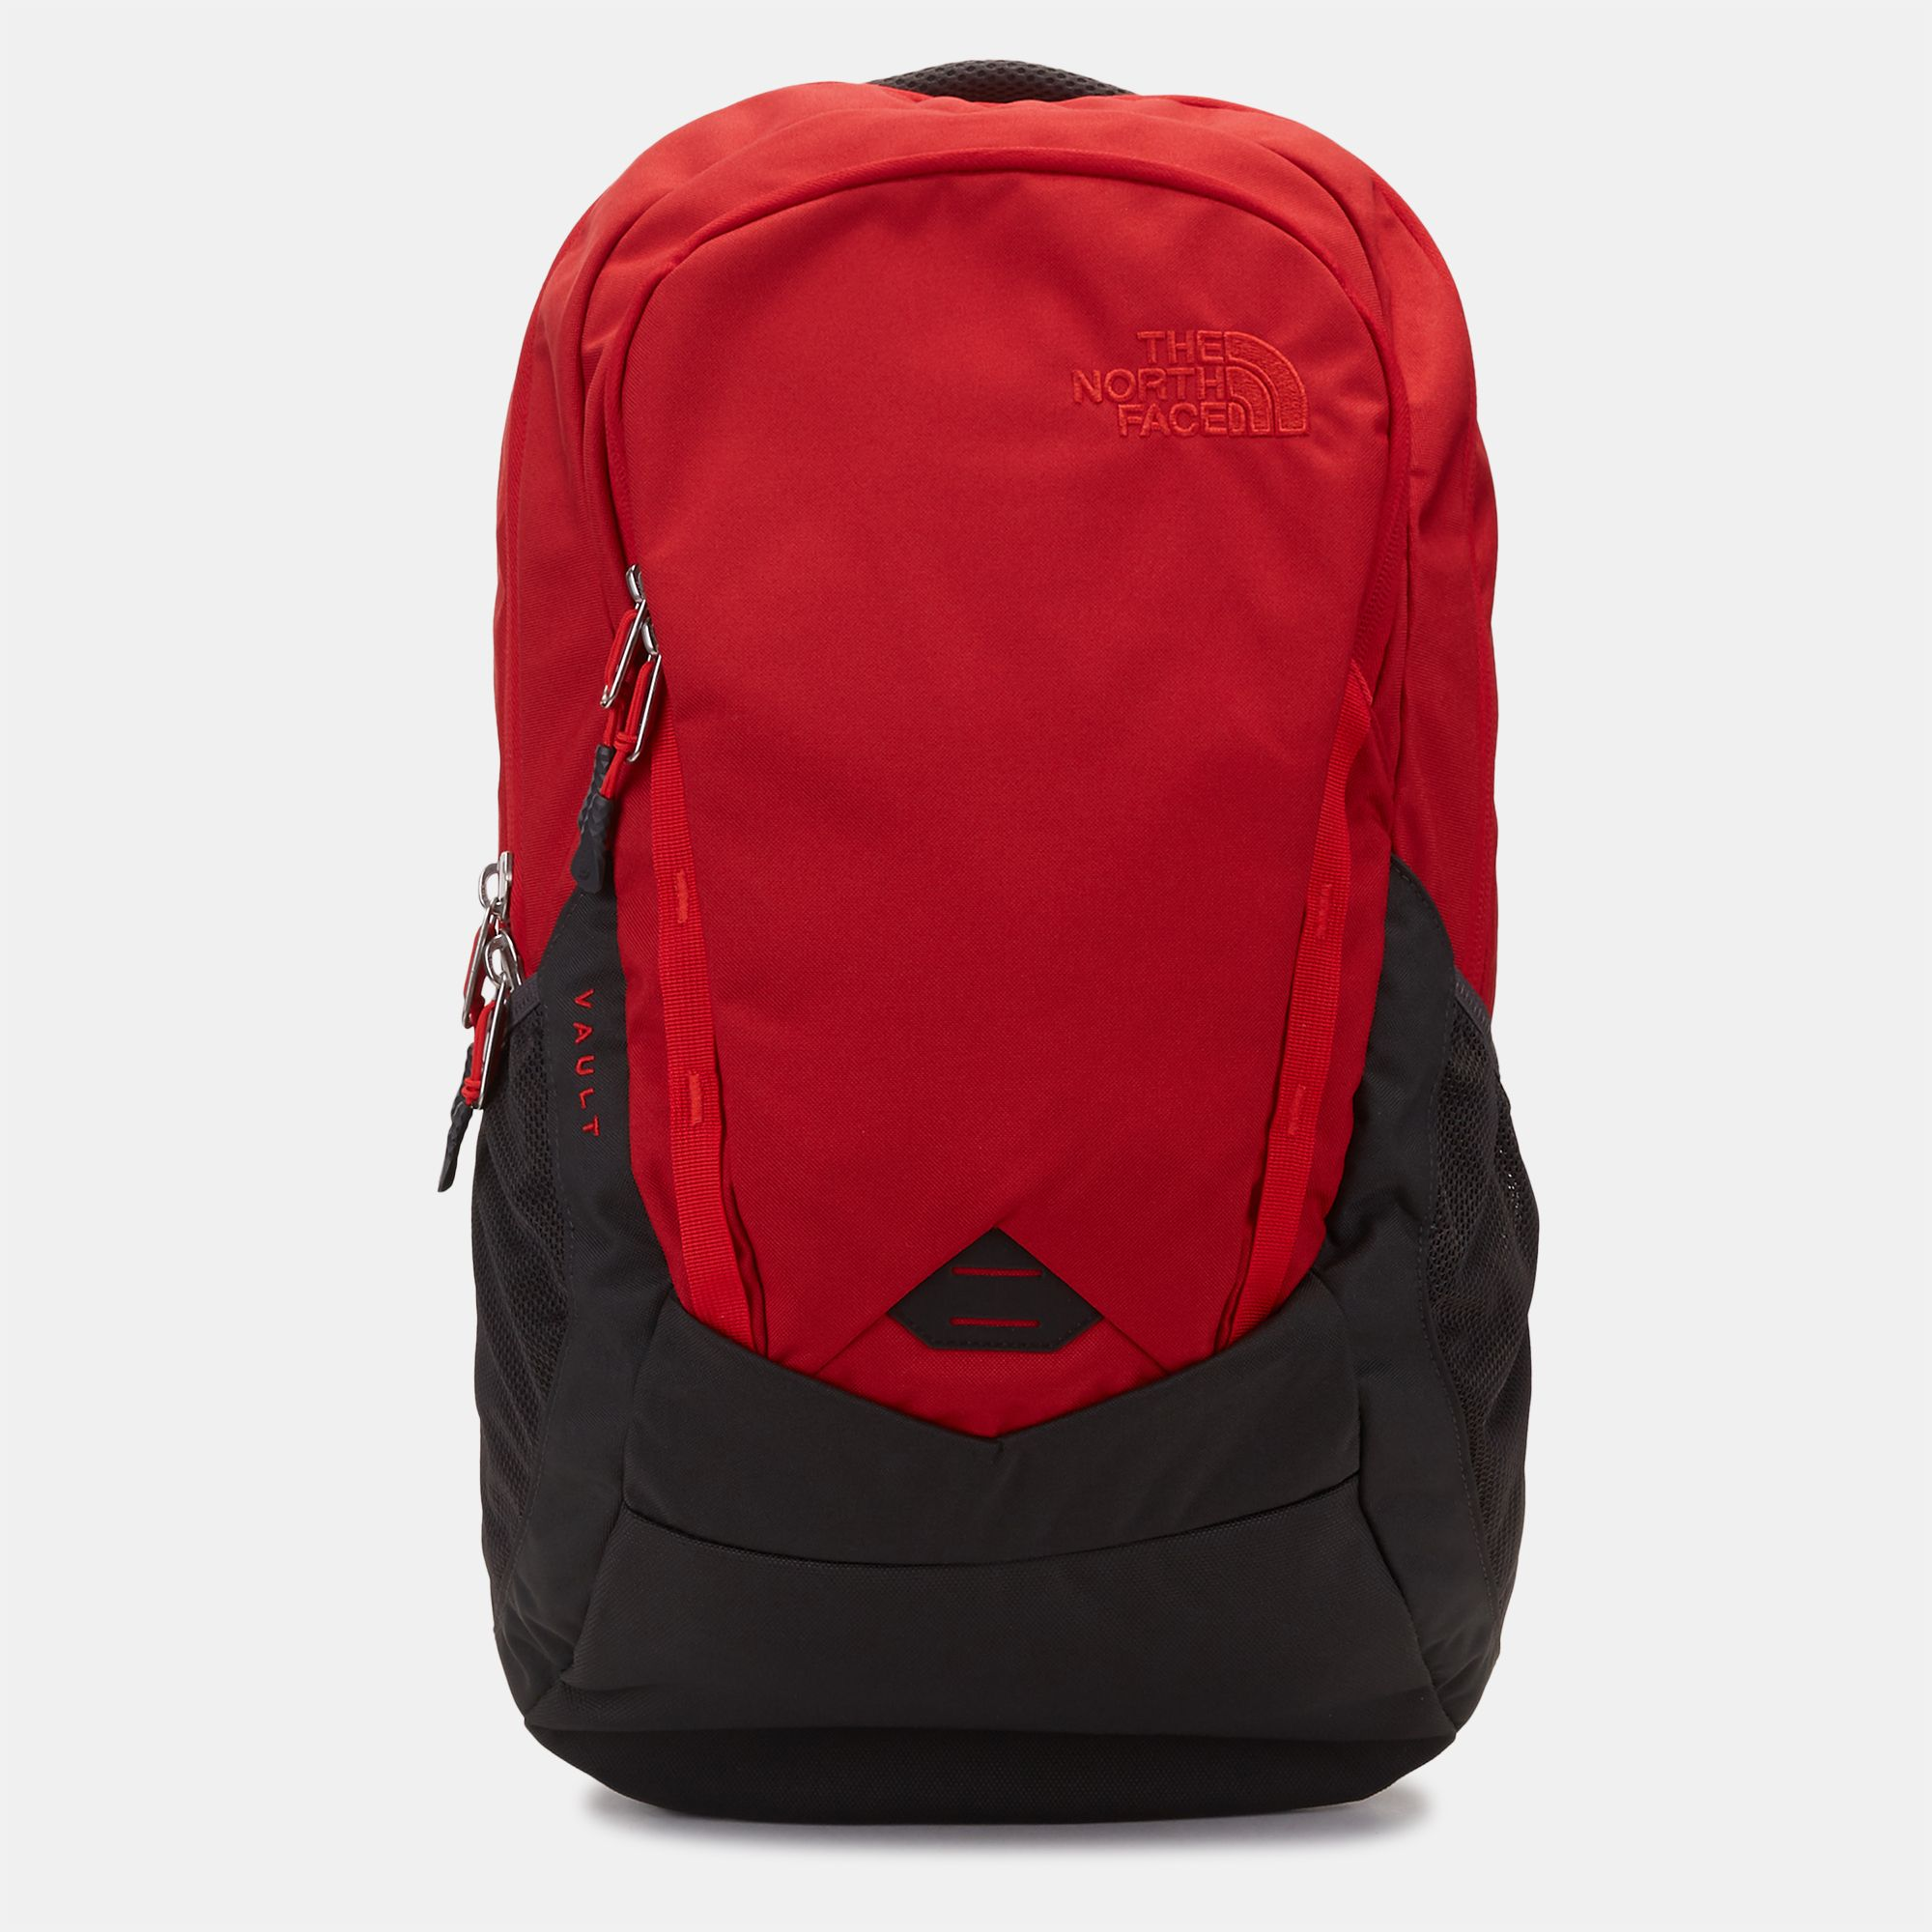 82c016dac968 North Face Unisex Vault Backpack- Fenix Toulouse Handball